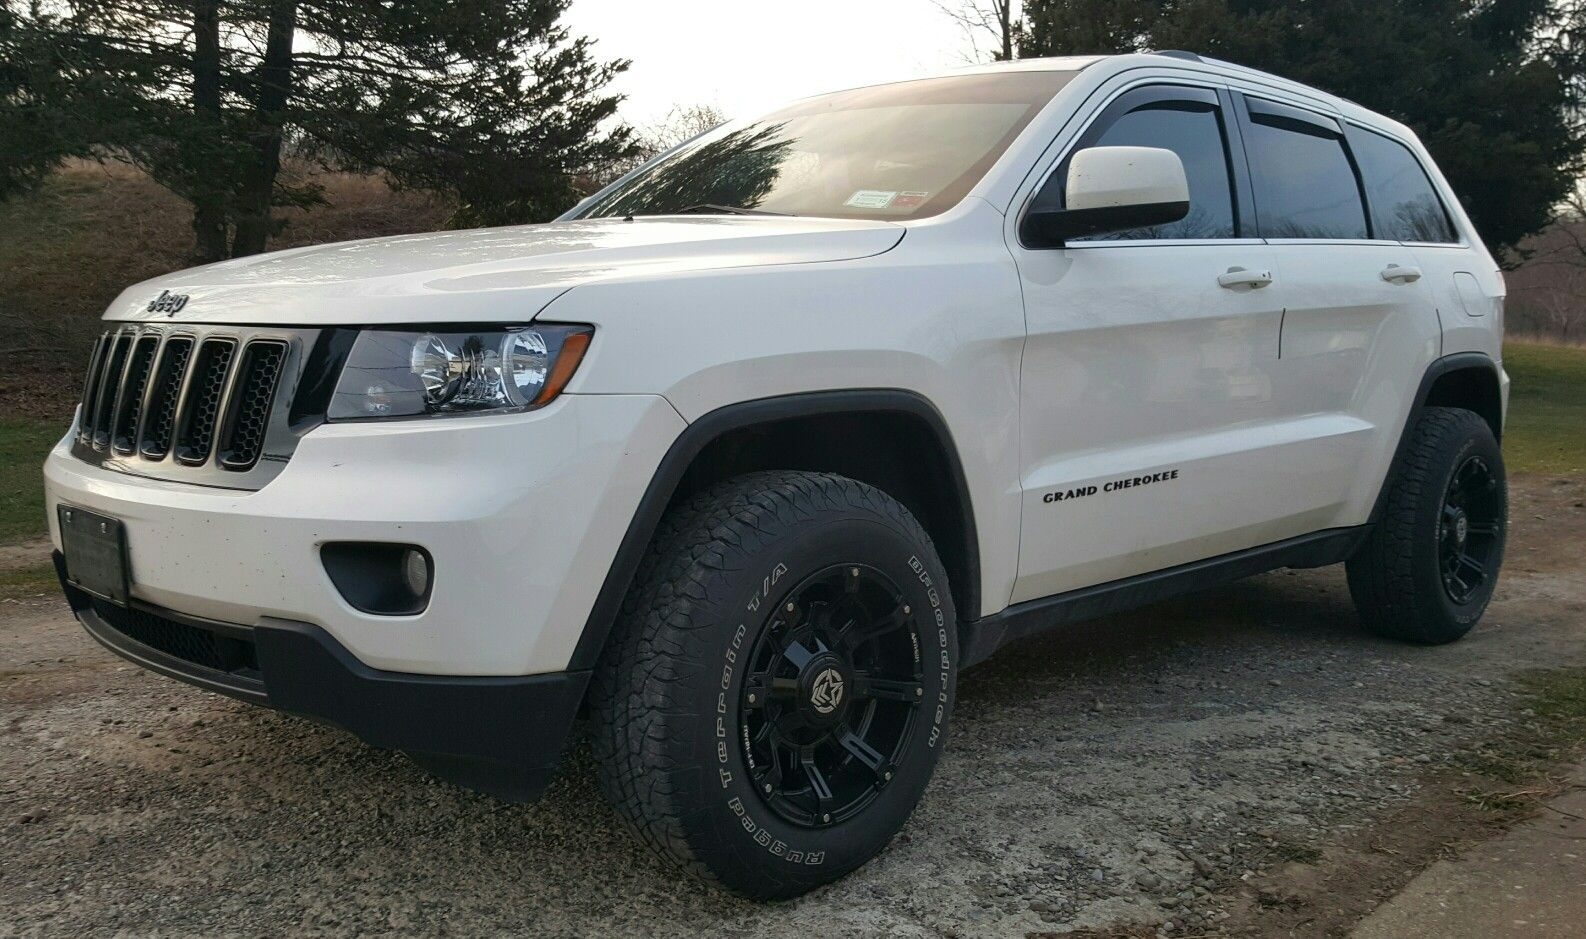 My 2012 Jeep Grand Cherokee Laredo | Jeep grand cherokee laredo, Jeep grand  cherokee, 2012 grand cherokee